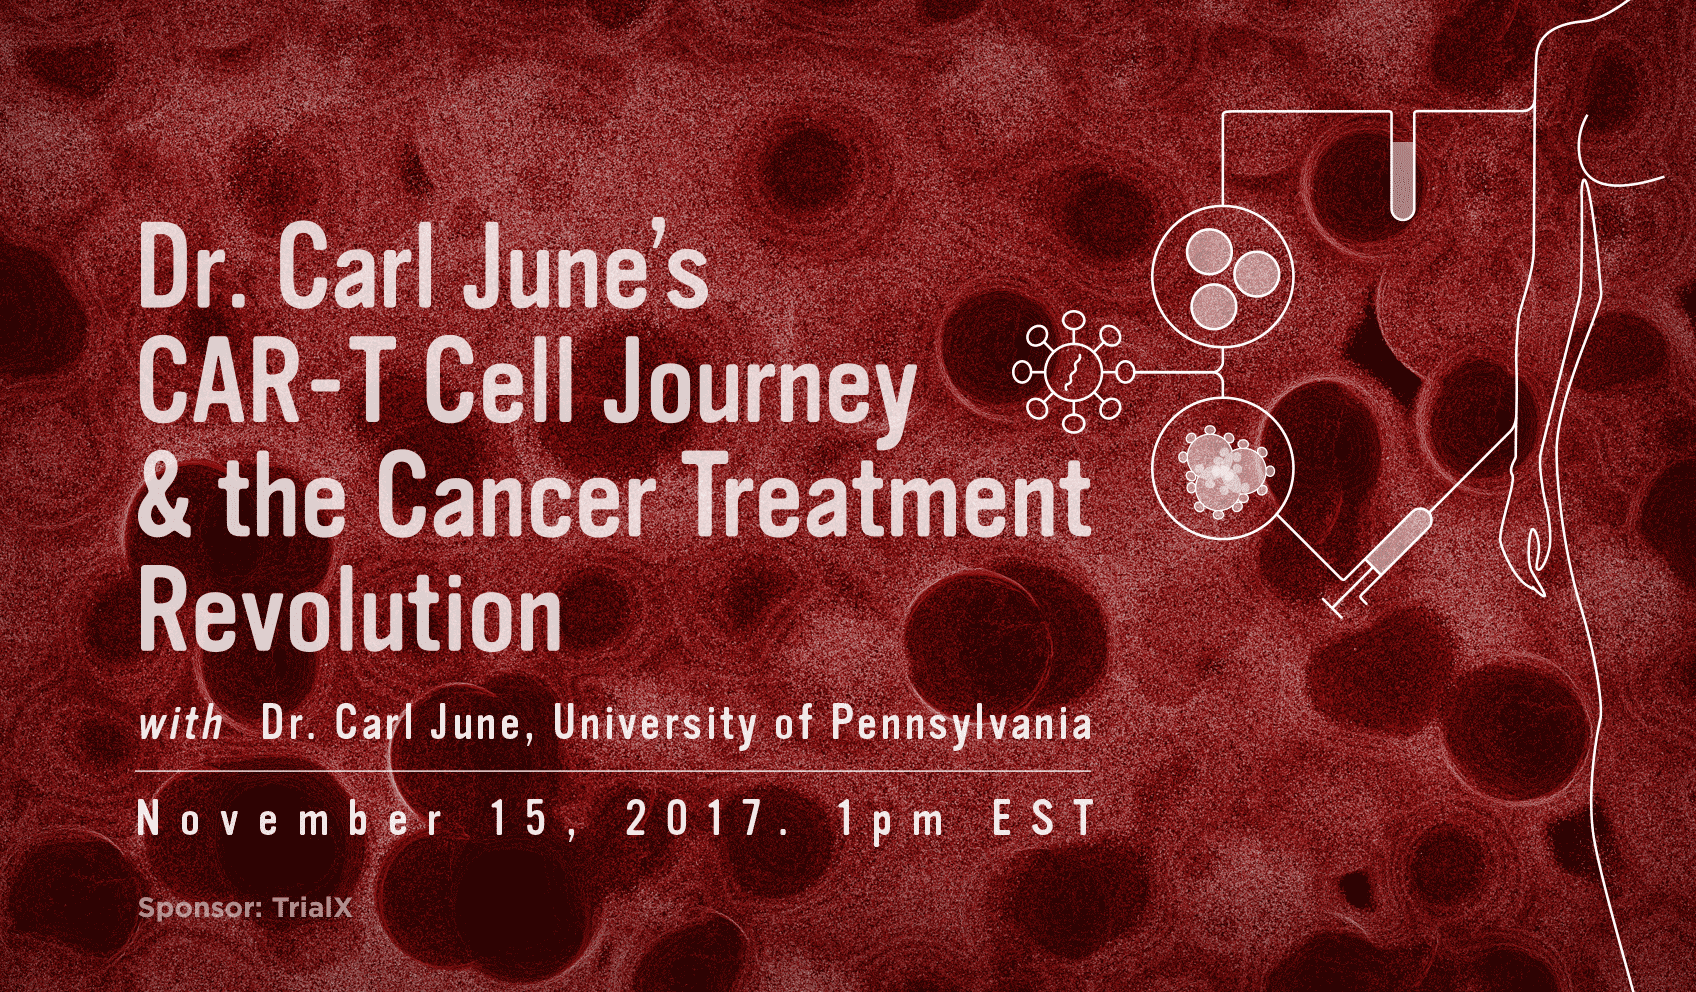 Dr. Carl June's CAR-T Cell Journey and the Cancer Treatment Revolution